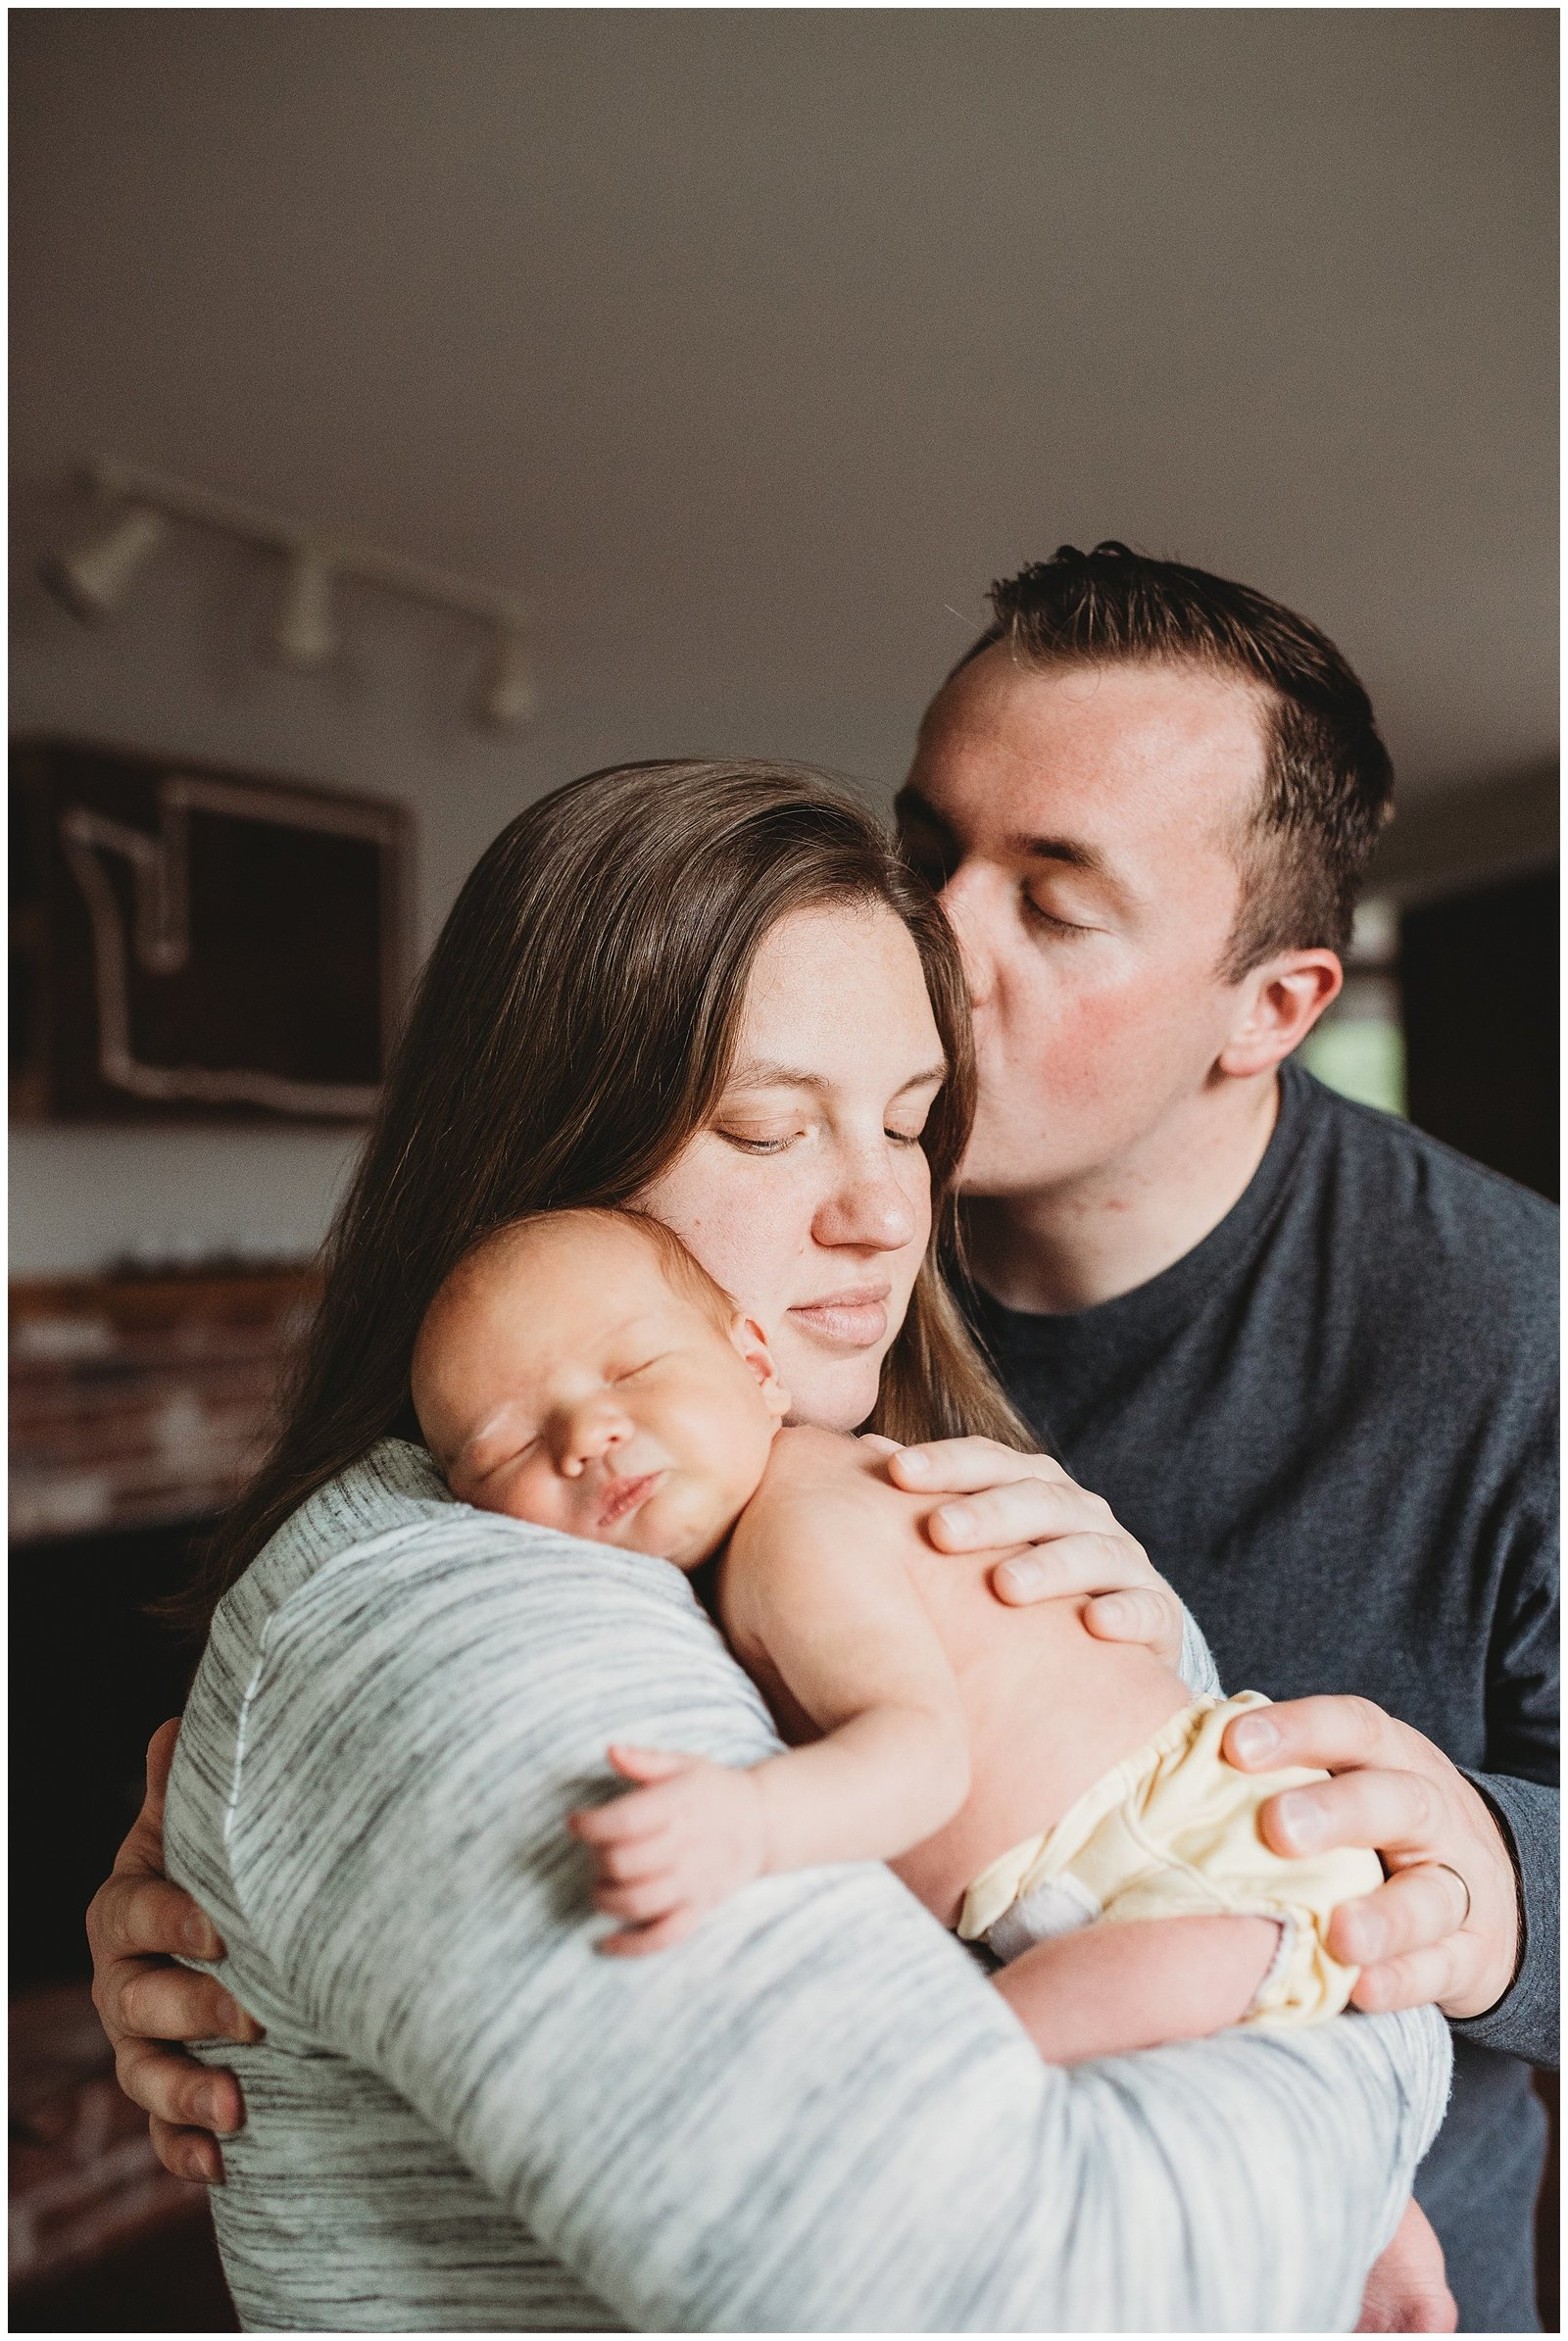 dad kissing mom holding newborn baby boy in home lifestyle photoshoot Emily Ann Photography Seattle Photographer